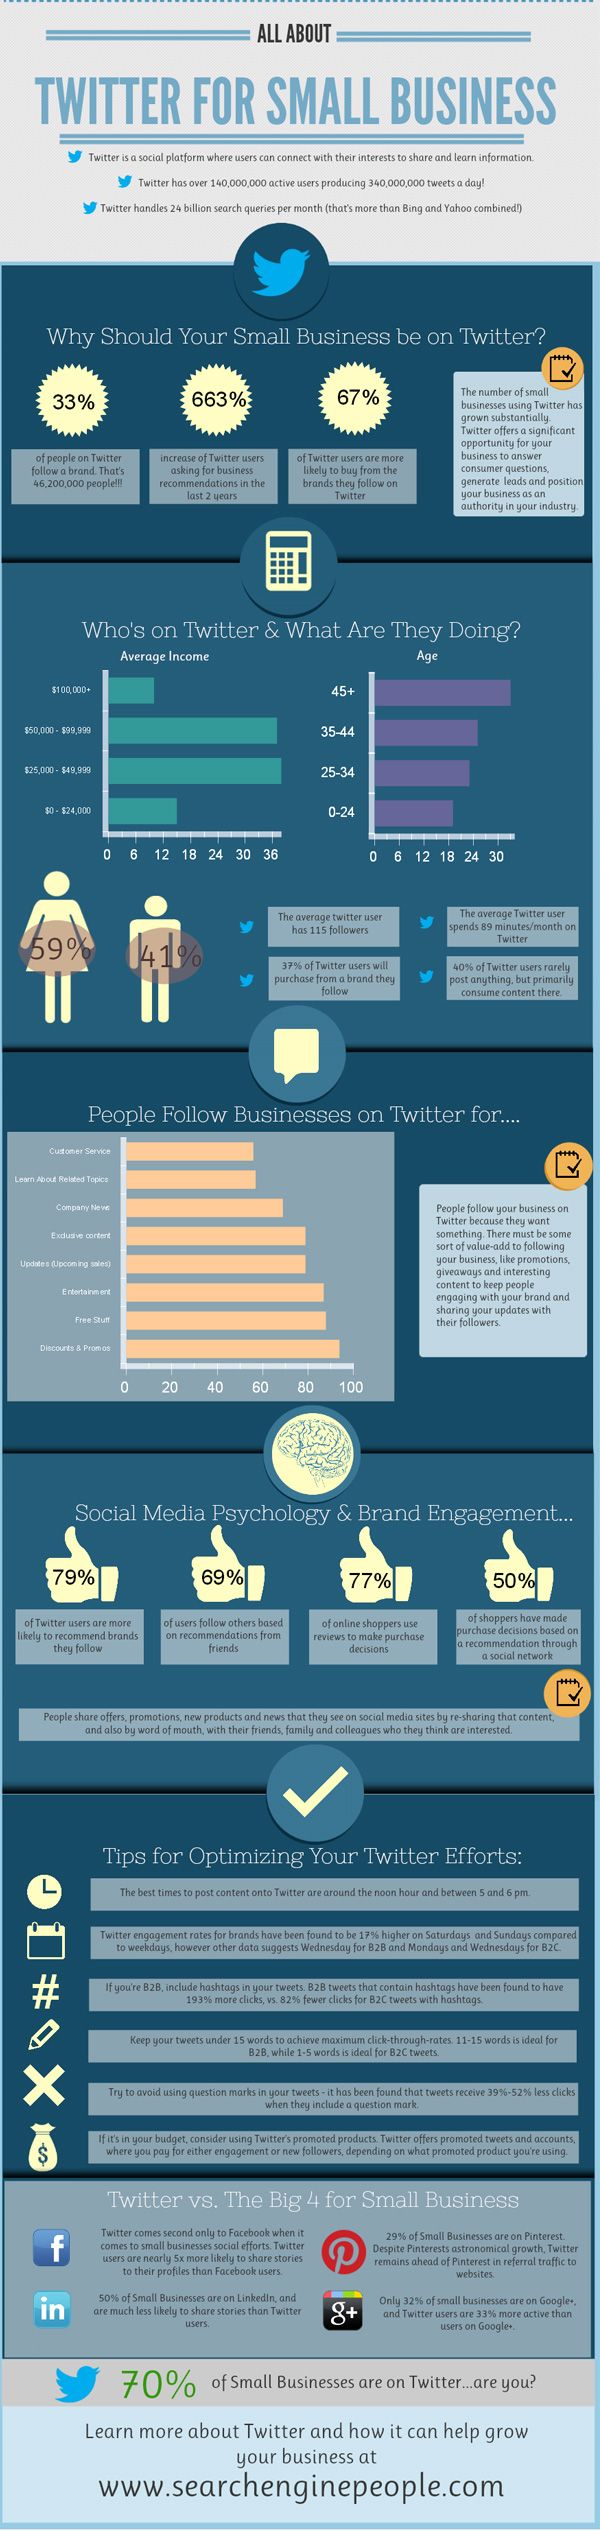 658 Best Infografias Images On Pinterest Social Media What Is Electric Circuit Ency123 Learn Create Have Fun An Interesting Infographic Which Suggests How Small Businesses Could Use Twitter As A Capability